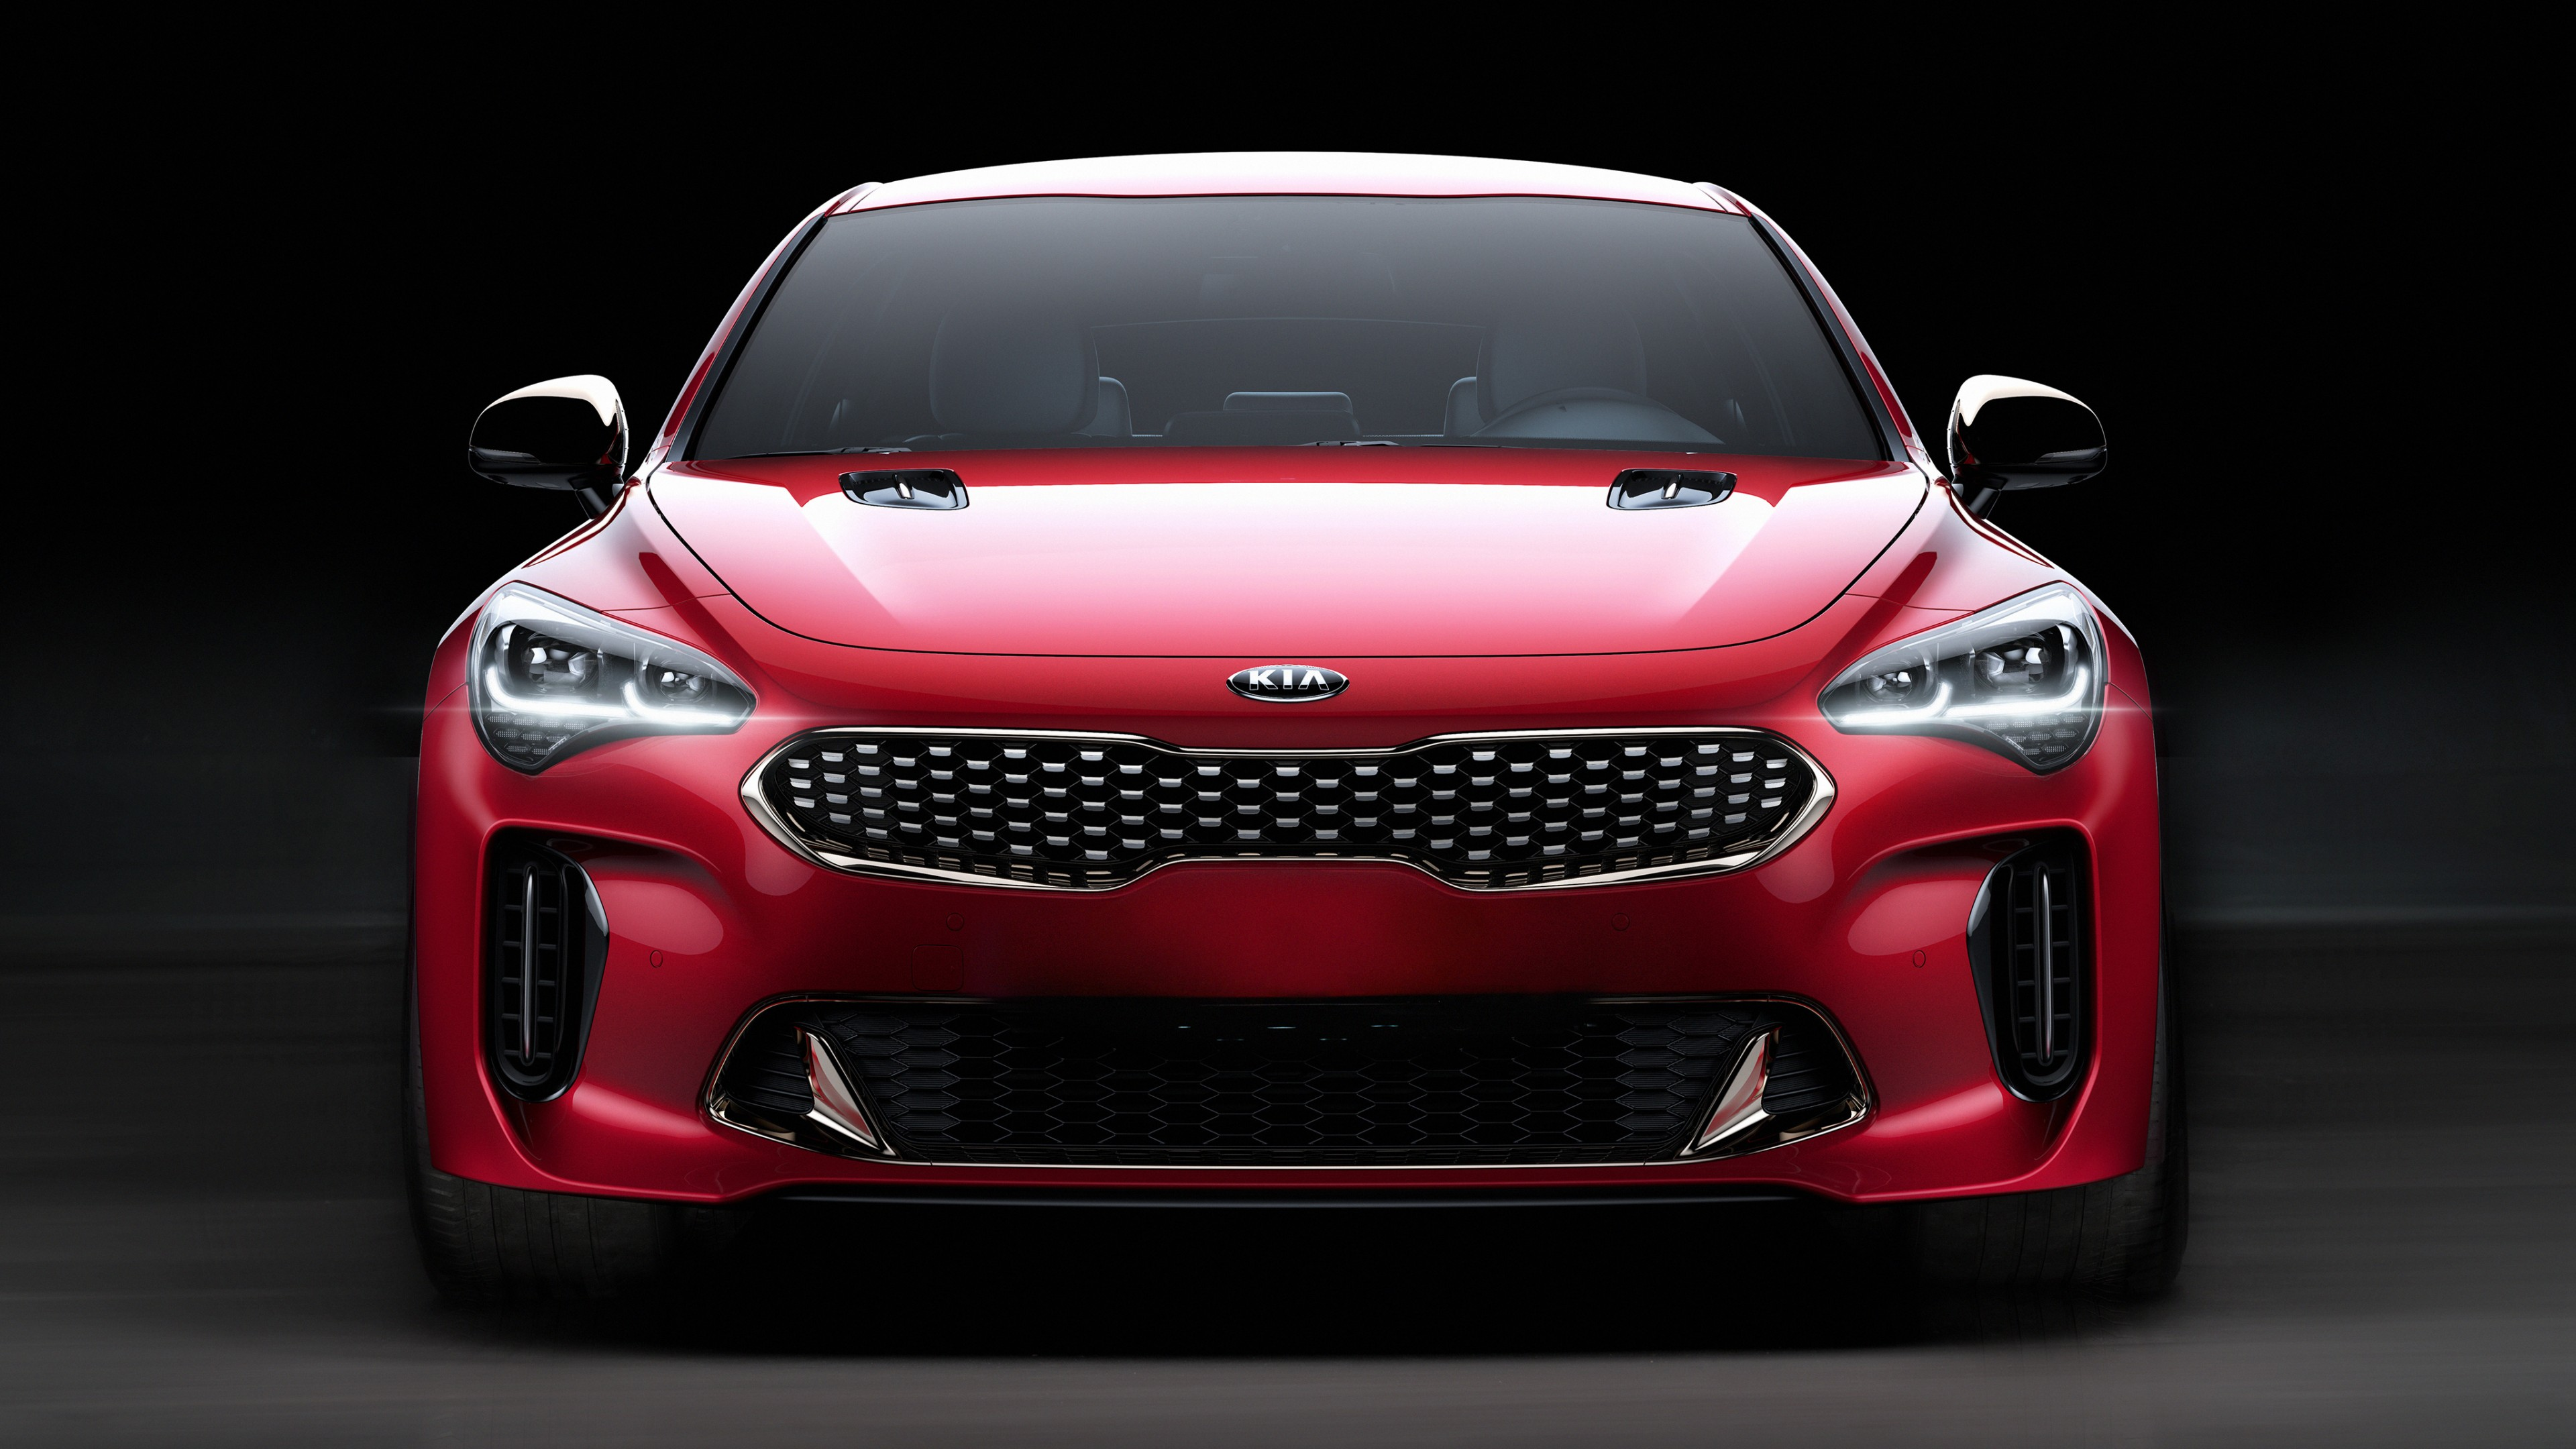 kia stinger gt 2018 4k wallpaper hd car wallpapers id 7912. Black Bedroom Furniture Sets. Home Design Ideas